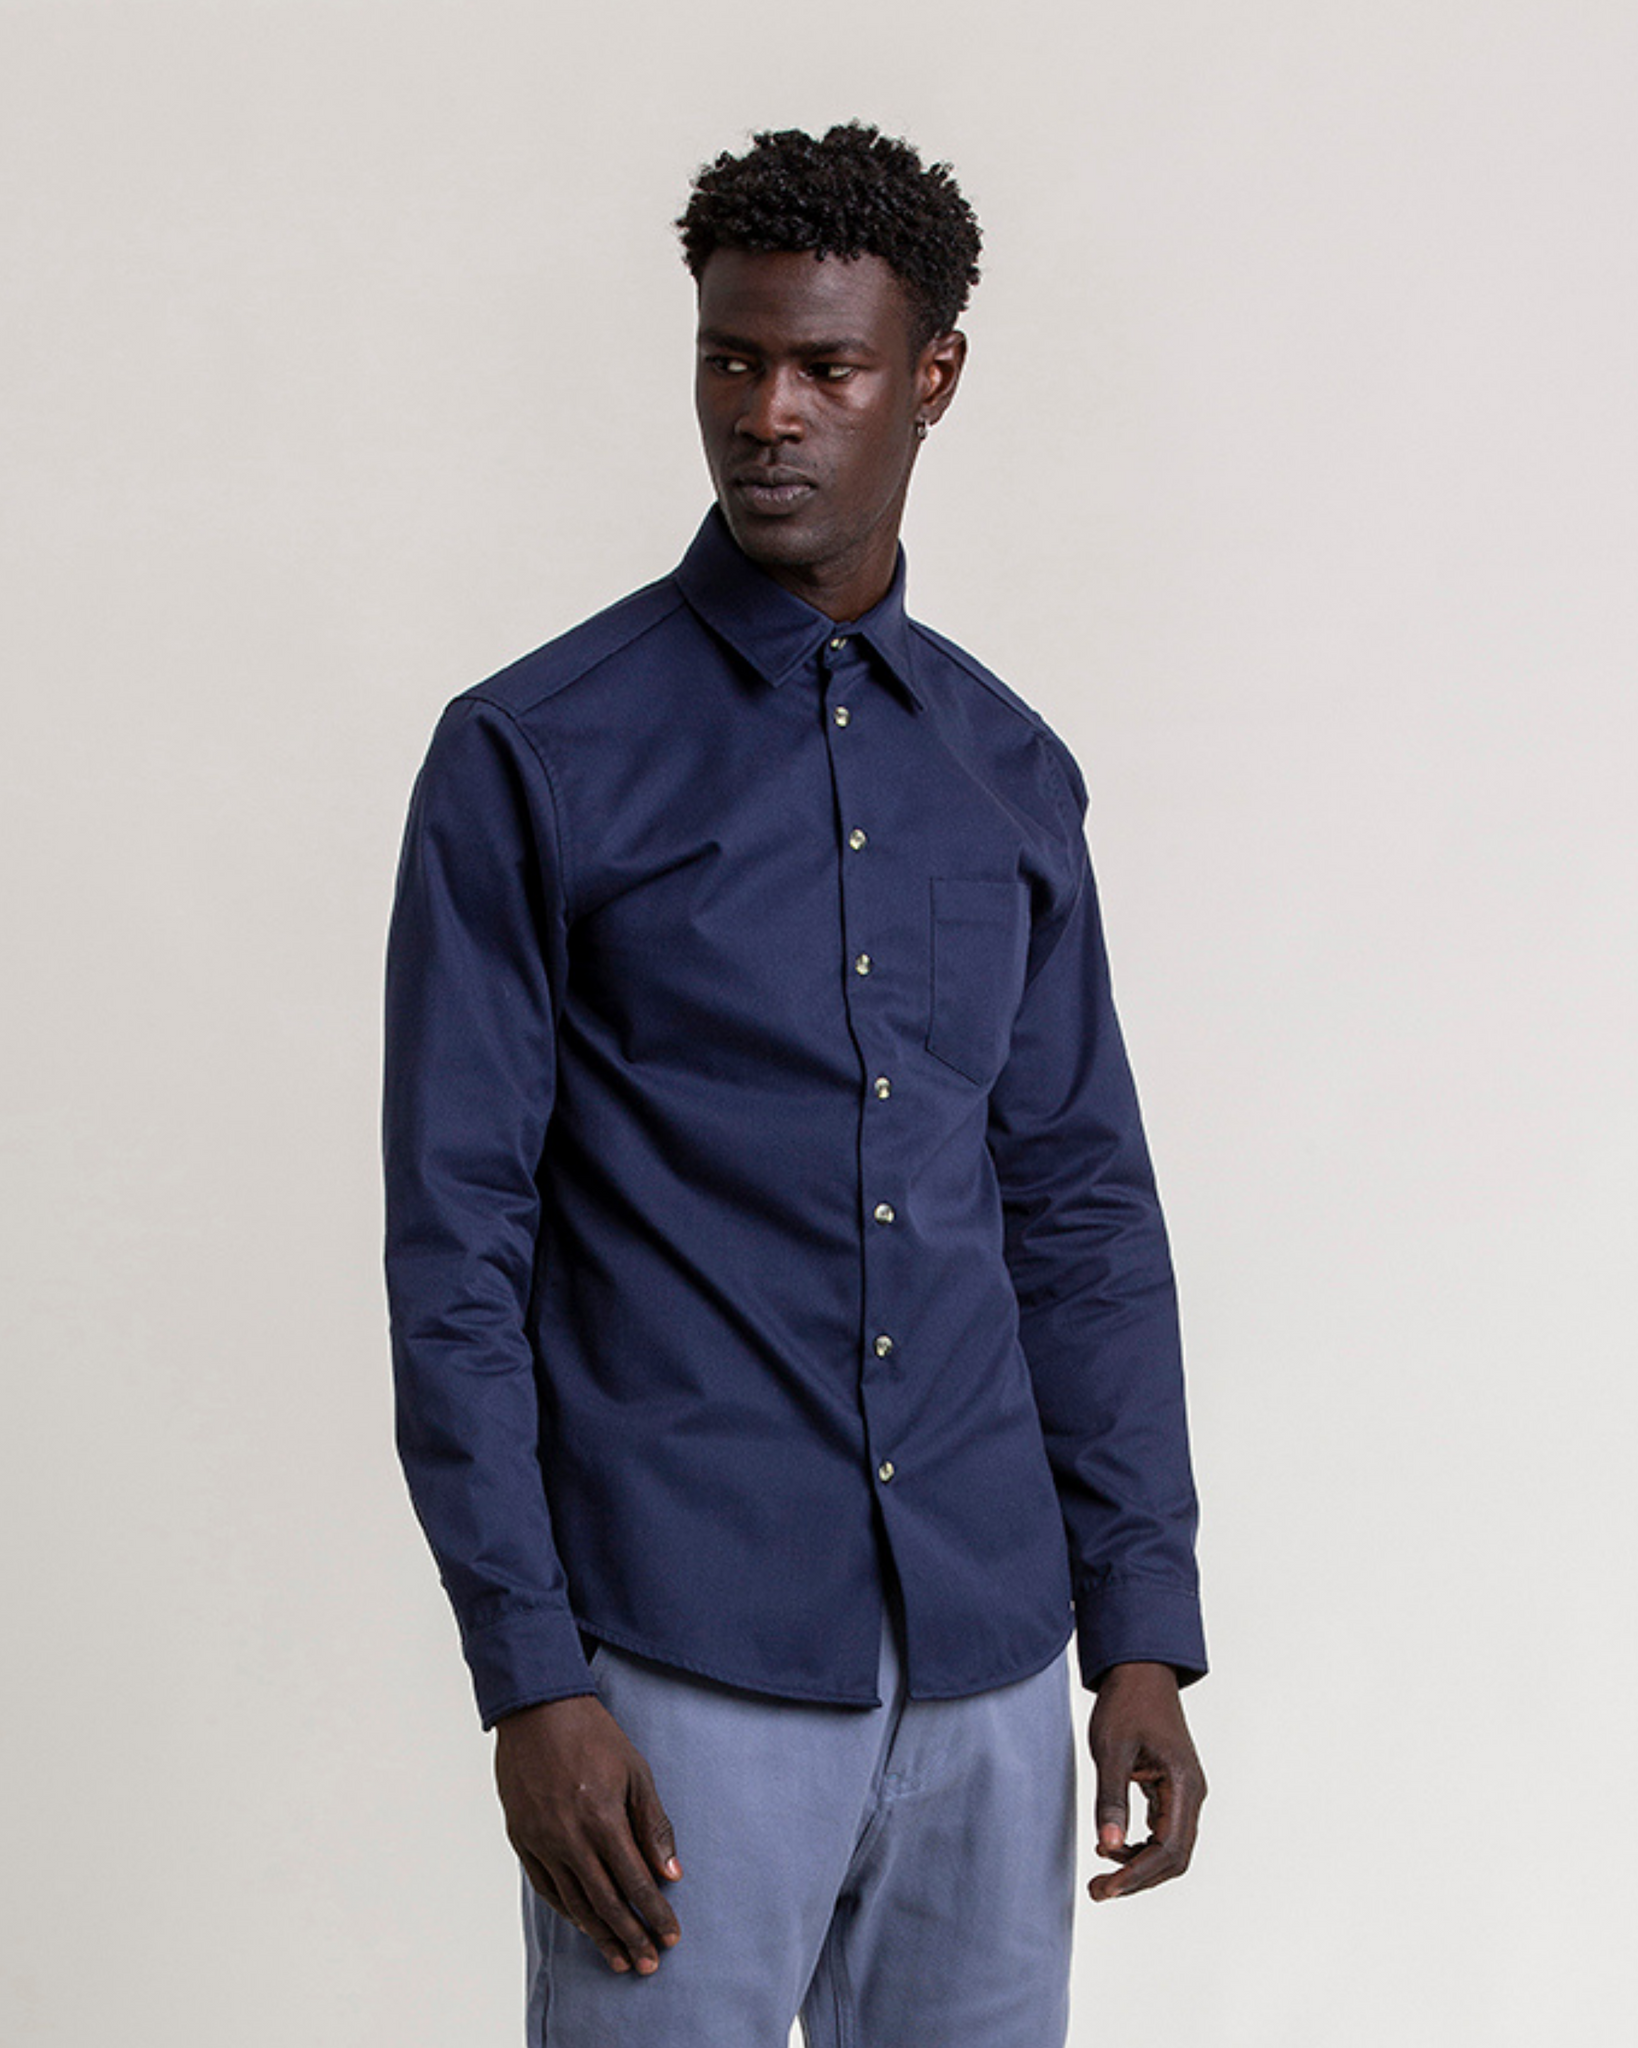 The 1 Pocket Cotton Shirt in Black Iris (Navy)